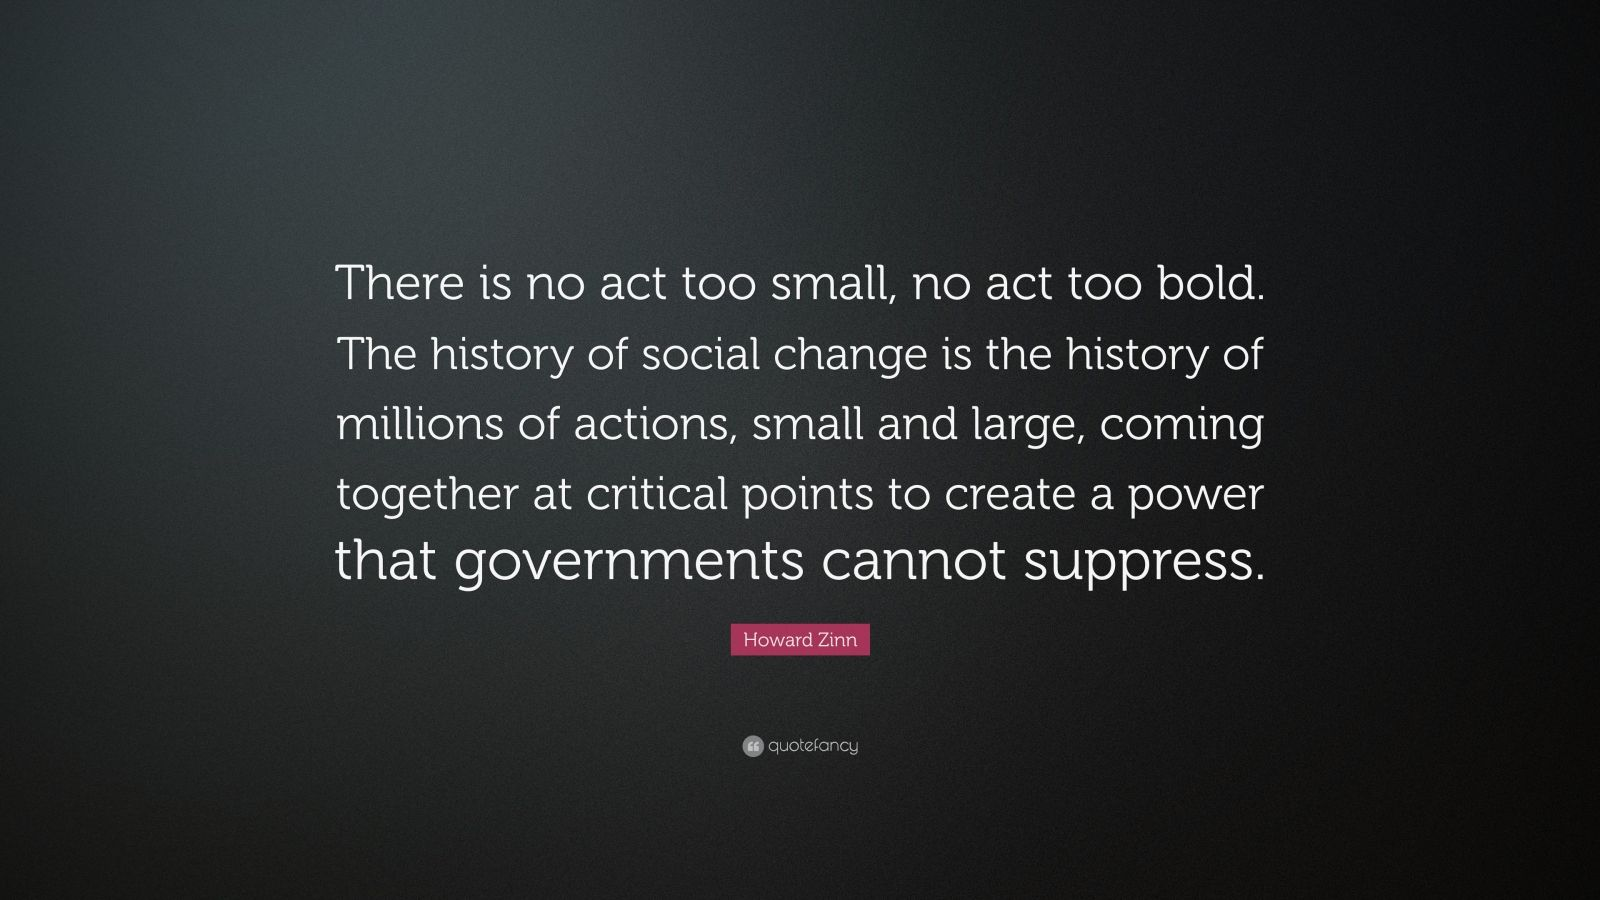 """Howard Zinn Quote: """"There is no act too small, no act too bold. The history of social change is the history of millions of actions, small and large, coming together at critical points to create a power that governments cannot suppress."""""""